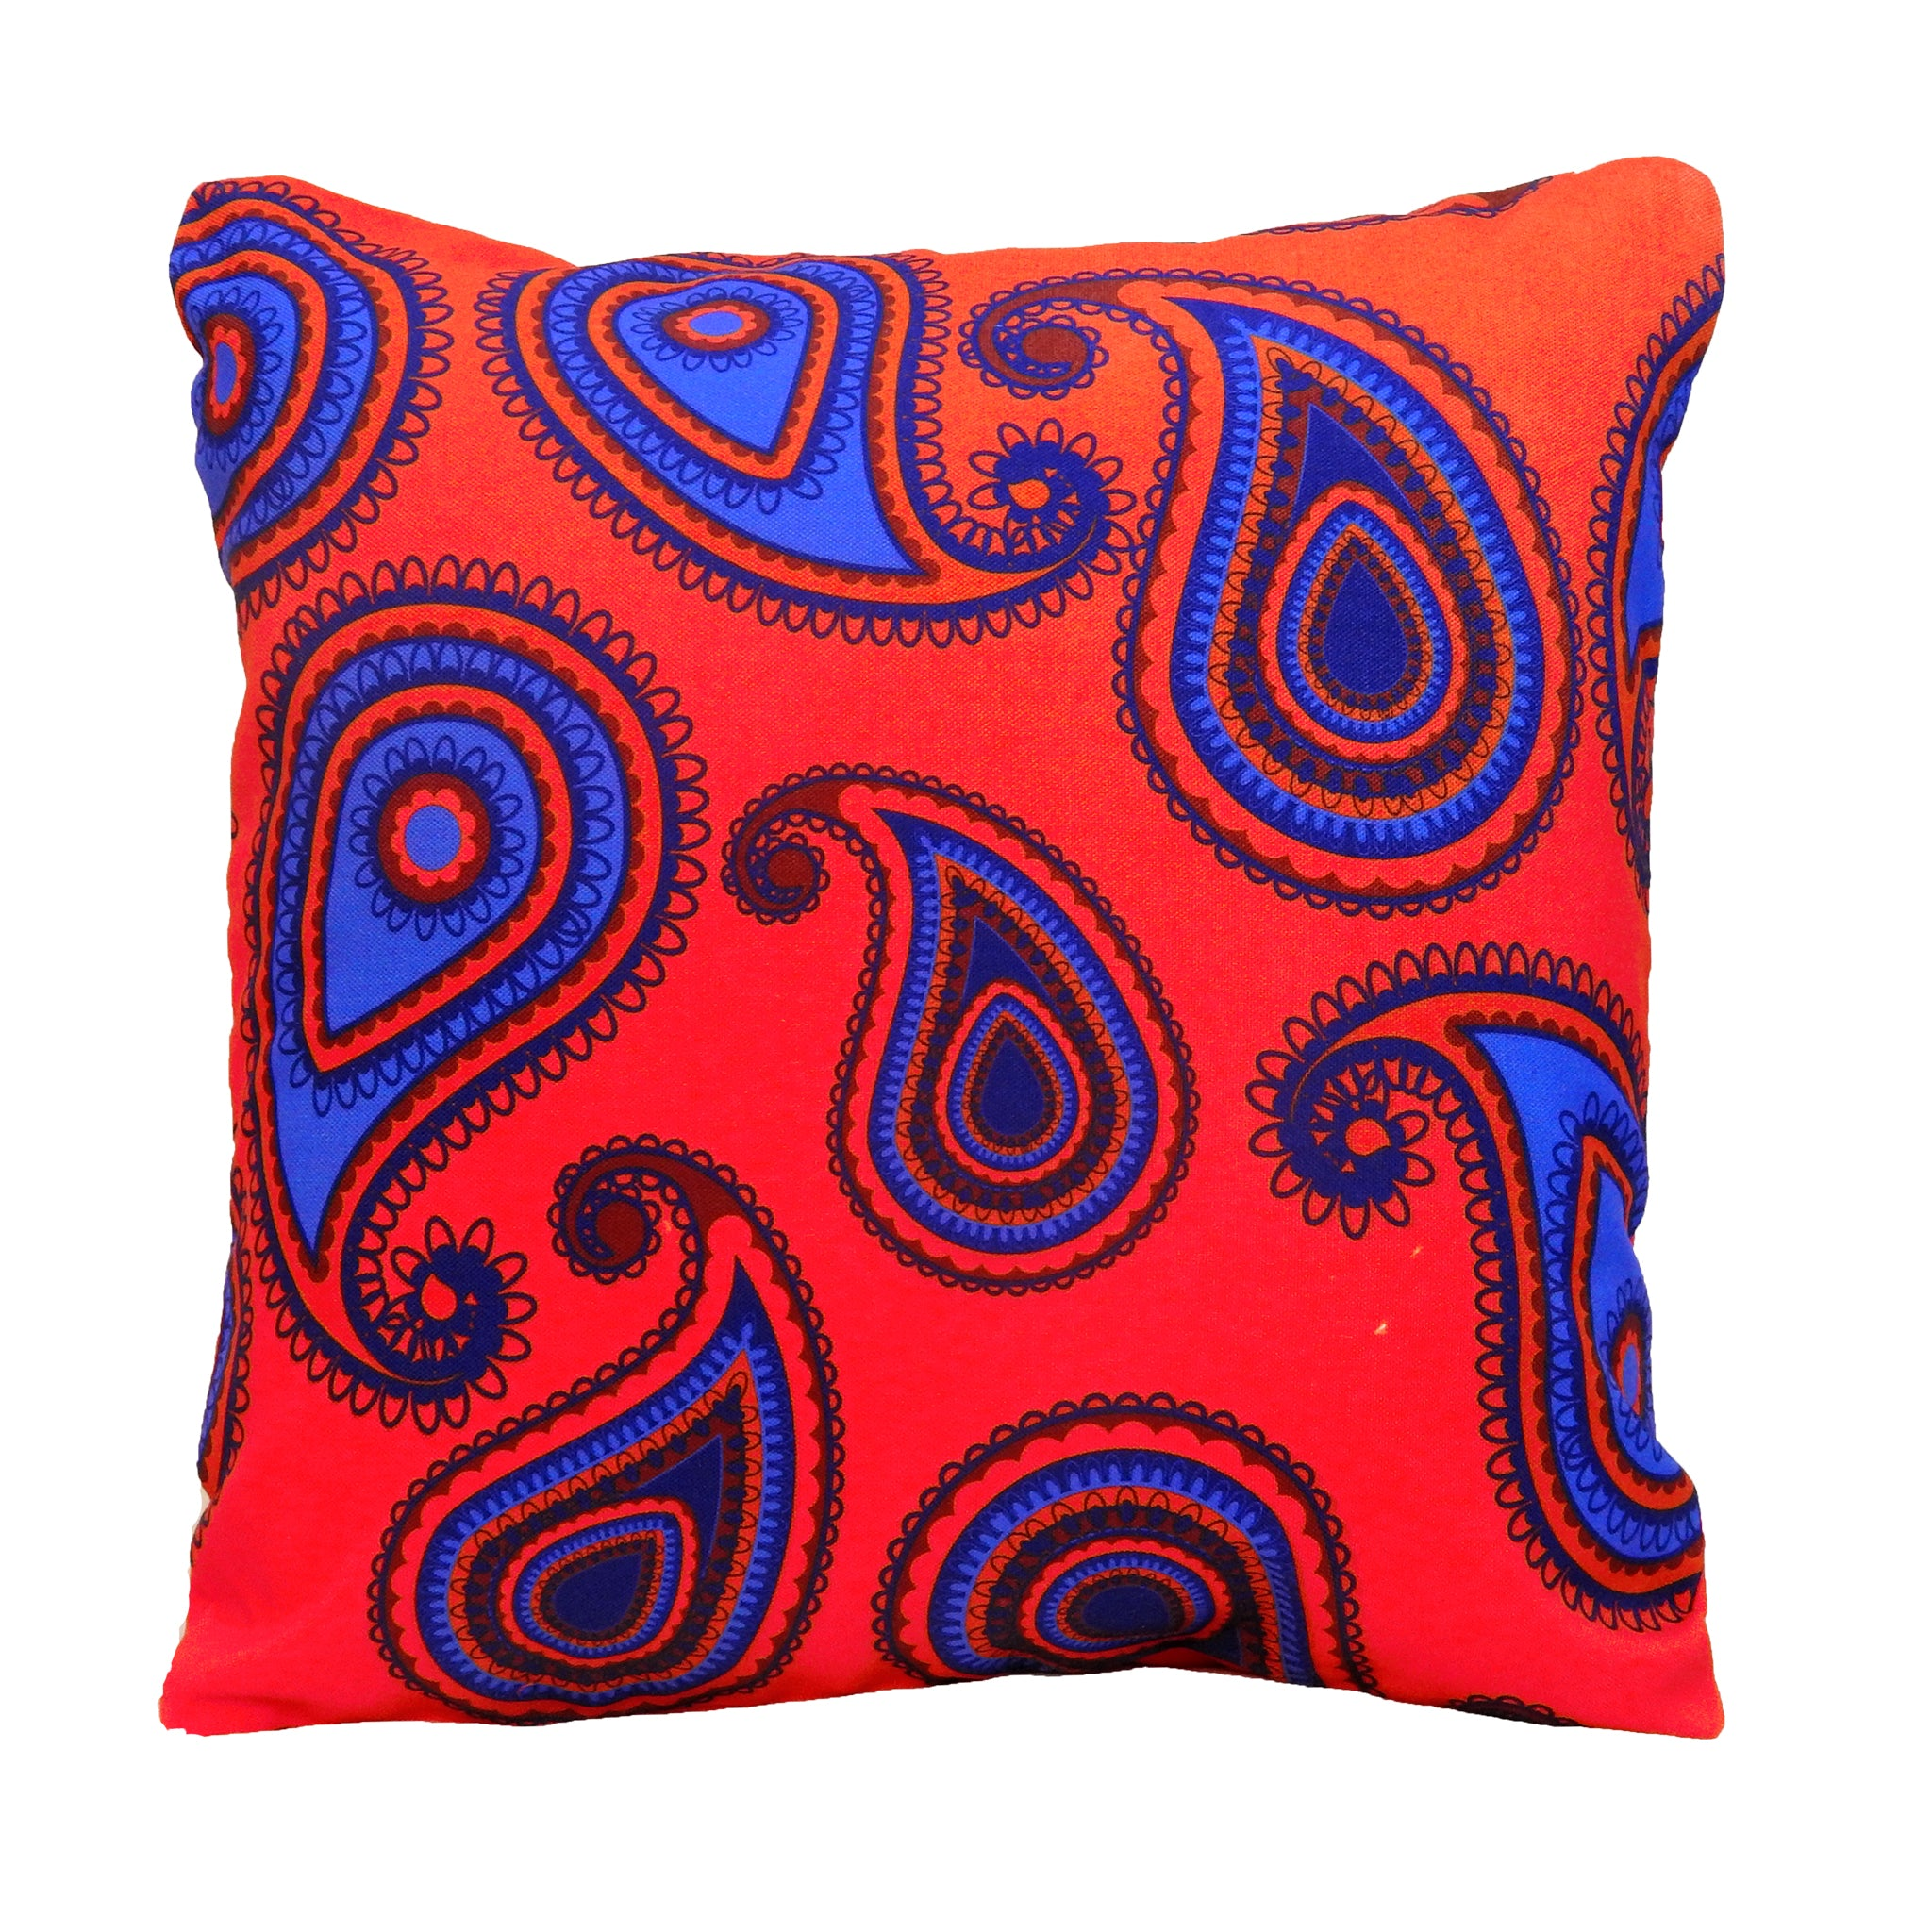 India's Favourite Paisley Print Cushion Cover